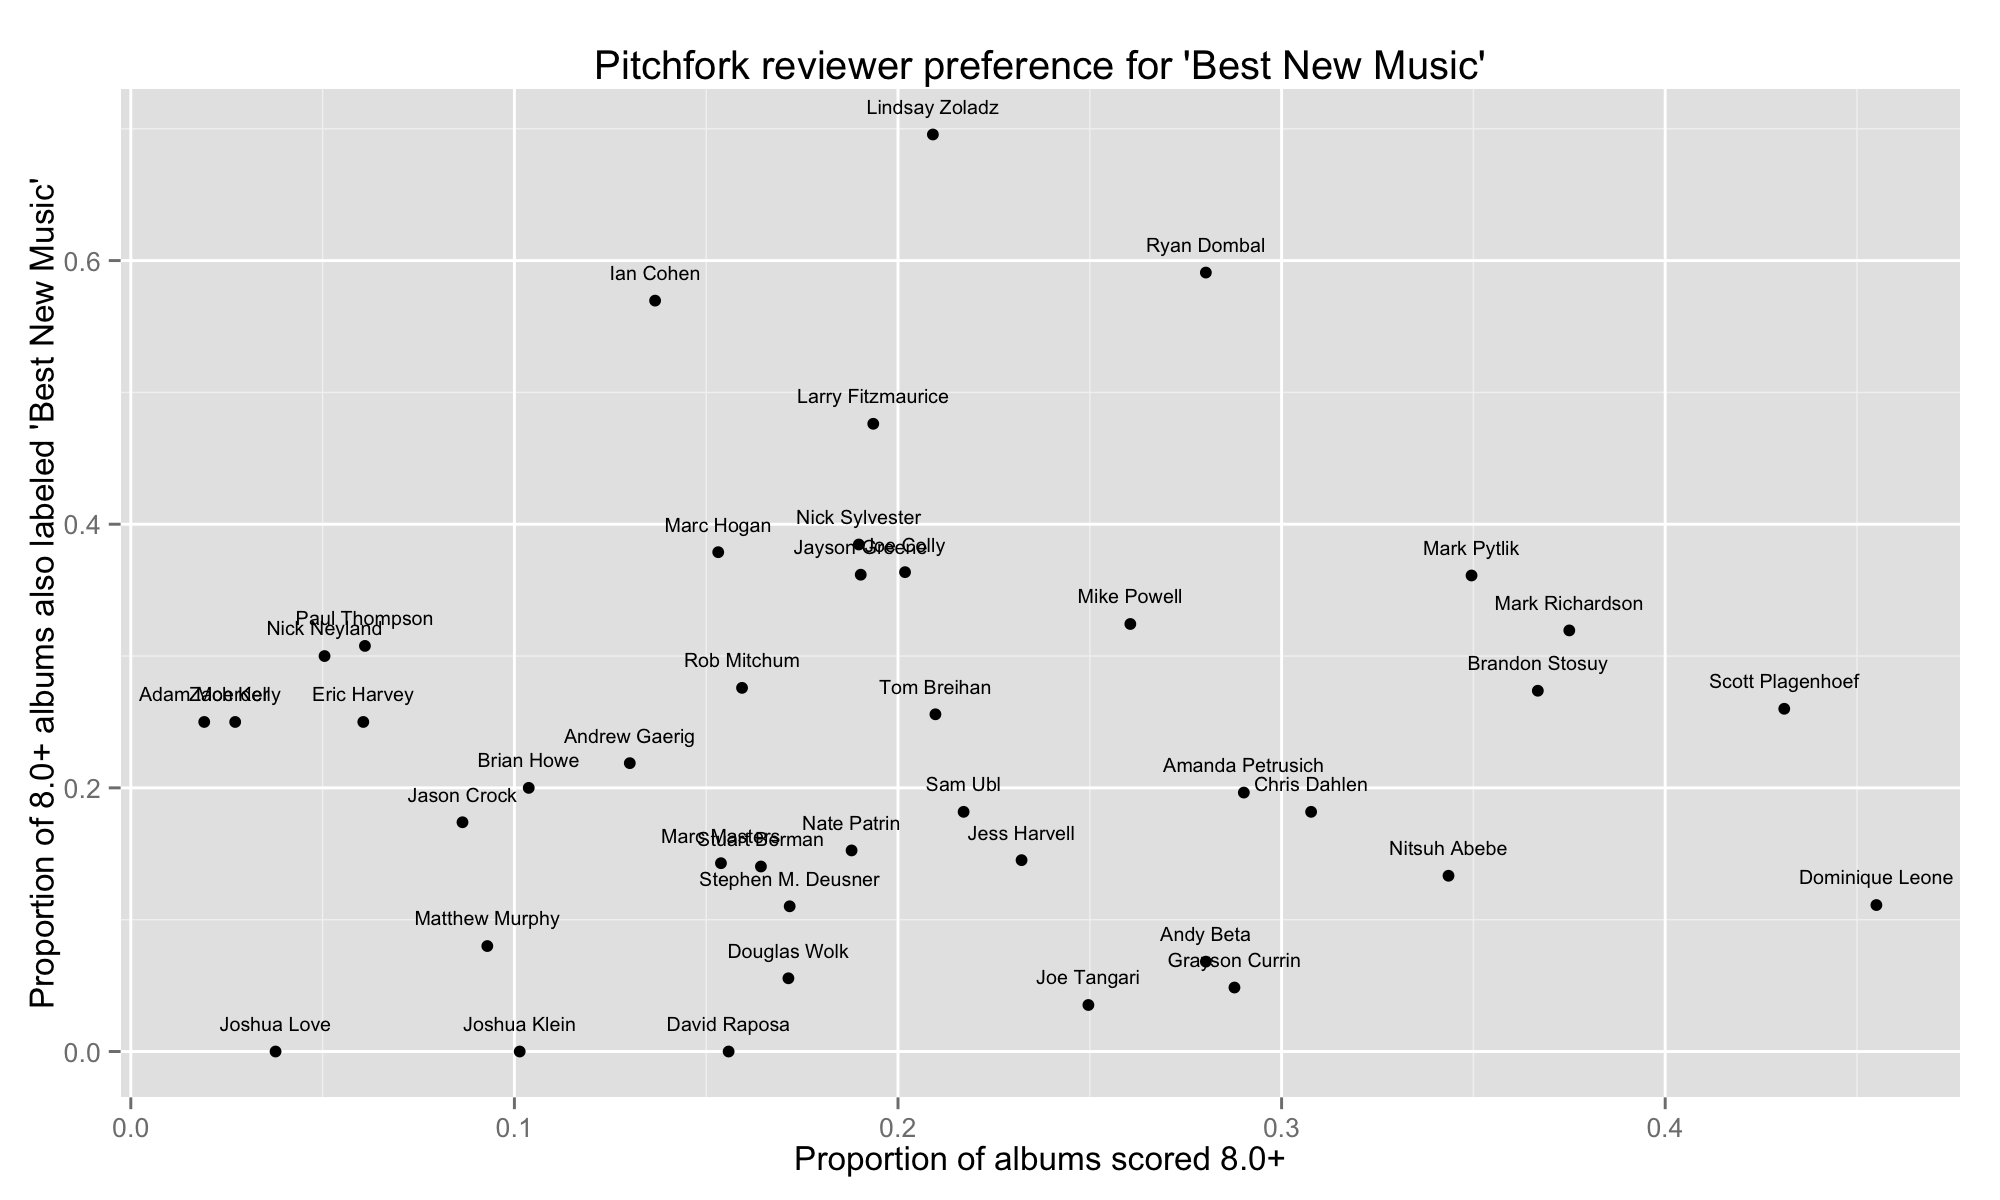 proportion of best new music versus reviews per year by reviewer